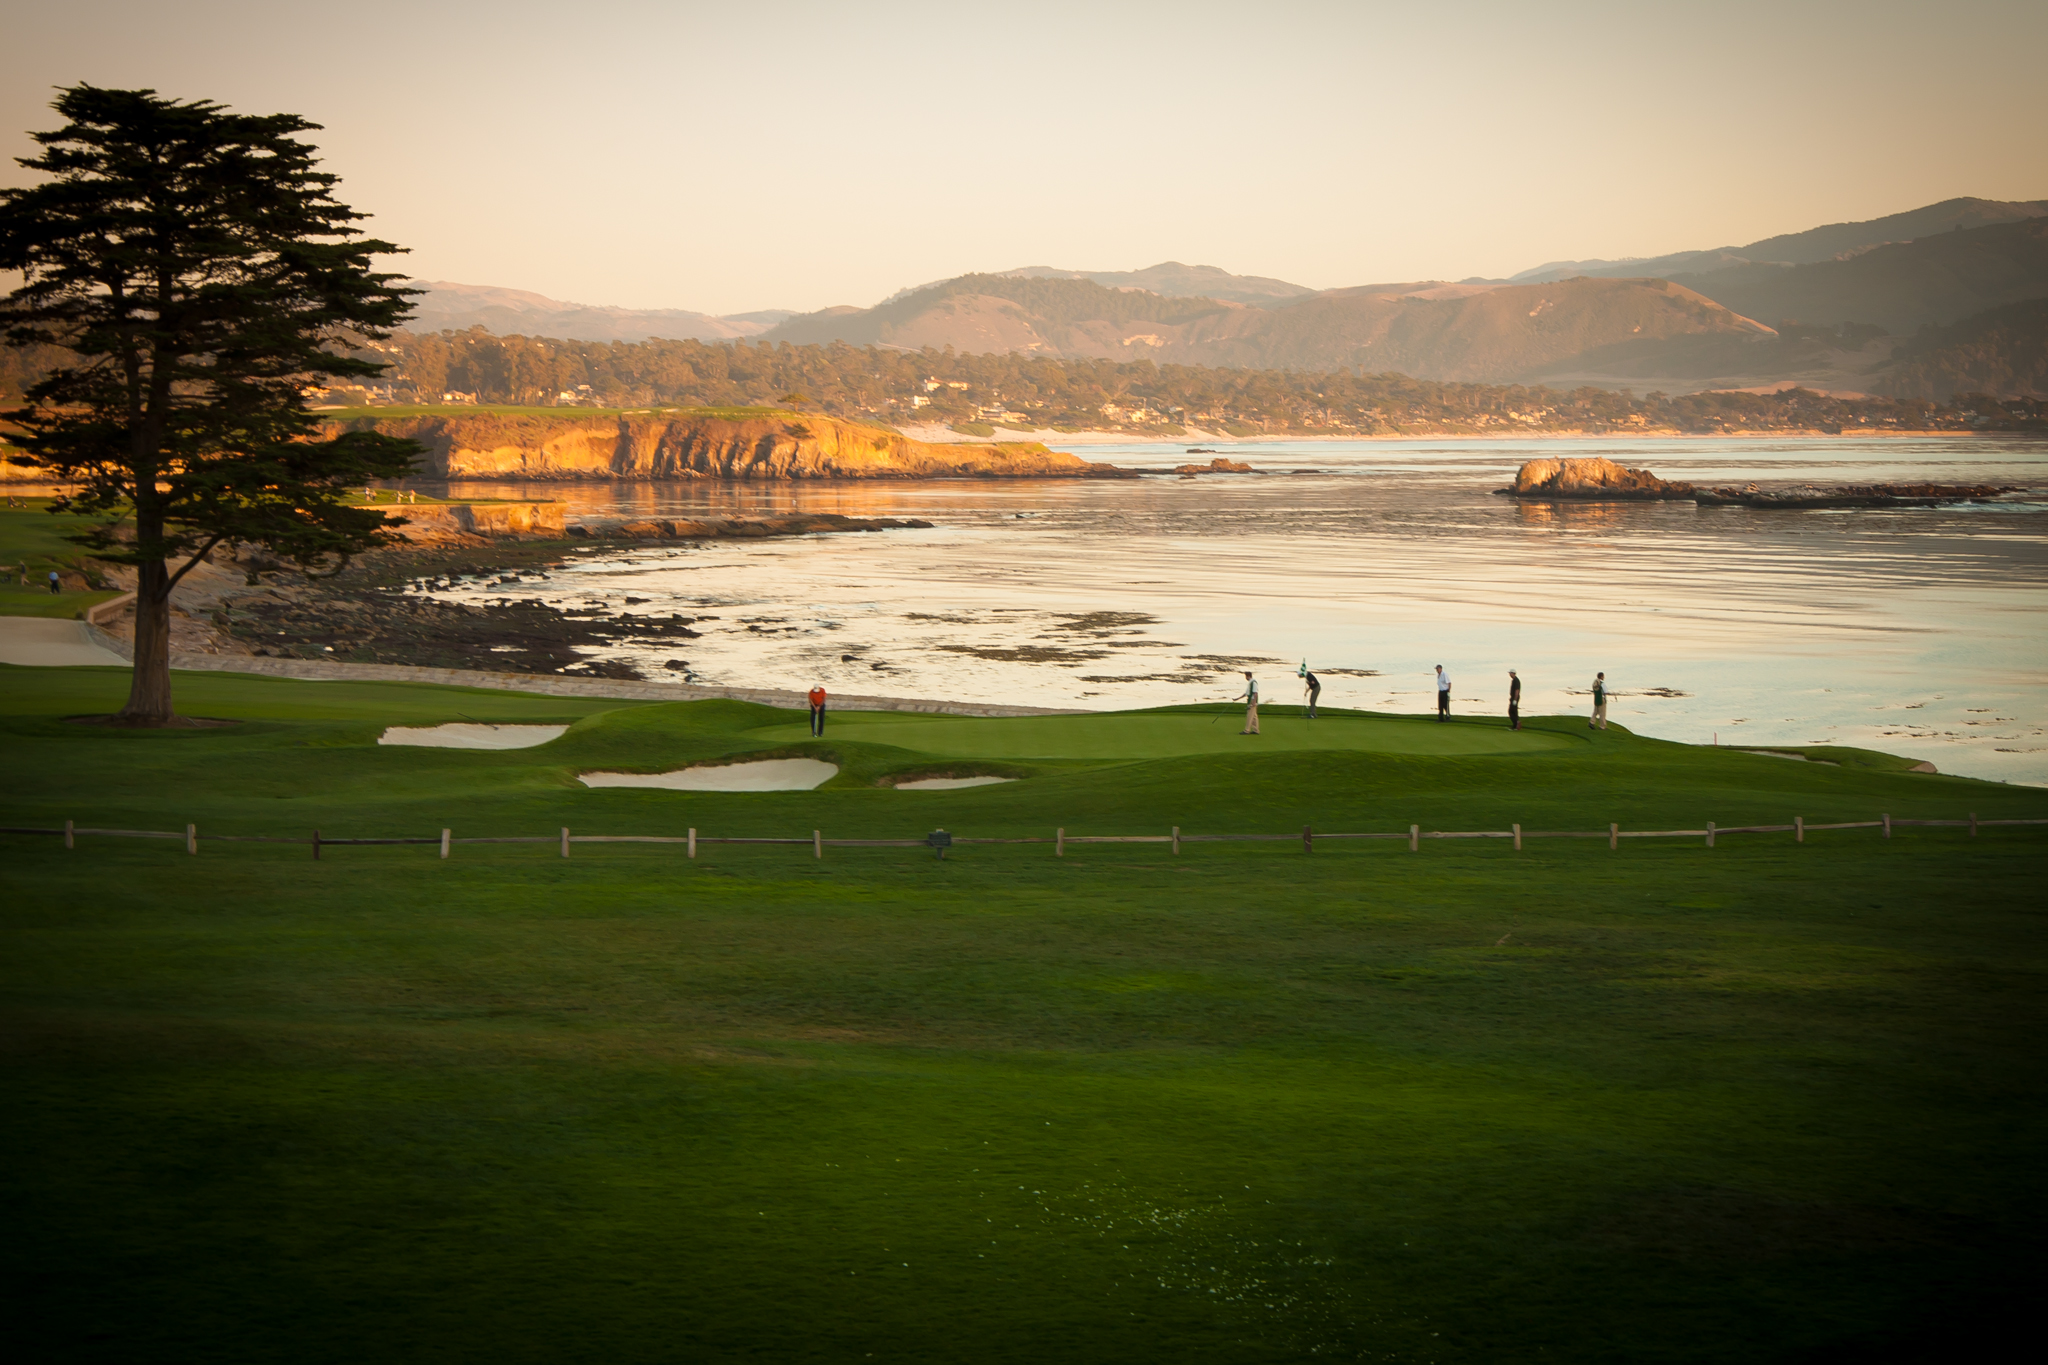 This is the 18th hole by the clubhouse at pebble beach. The golf course is as photographic as the drive!